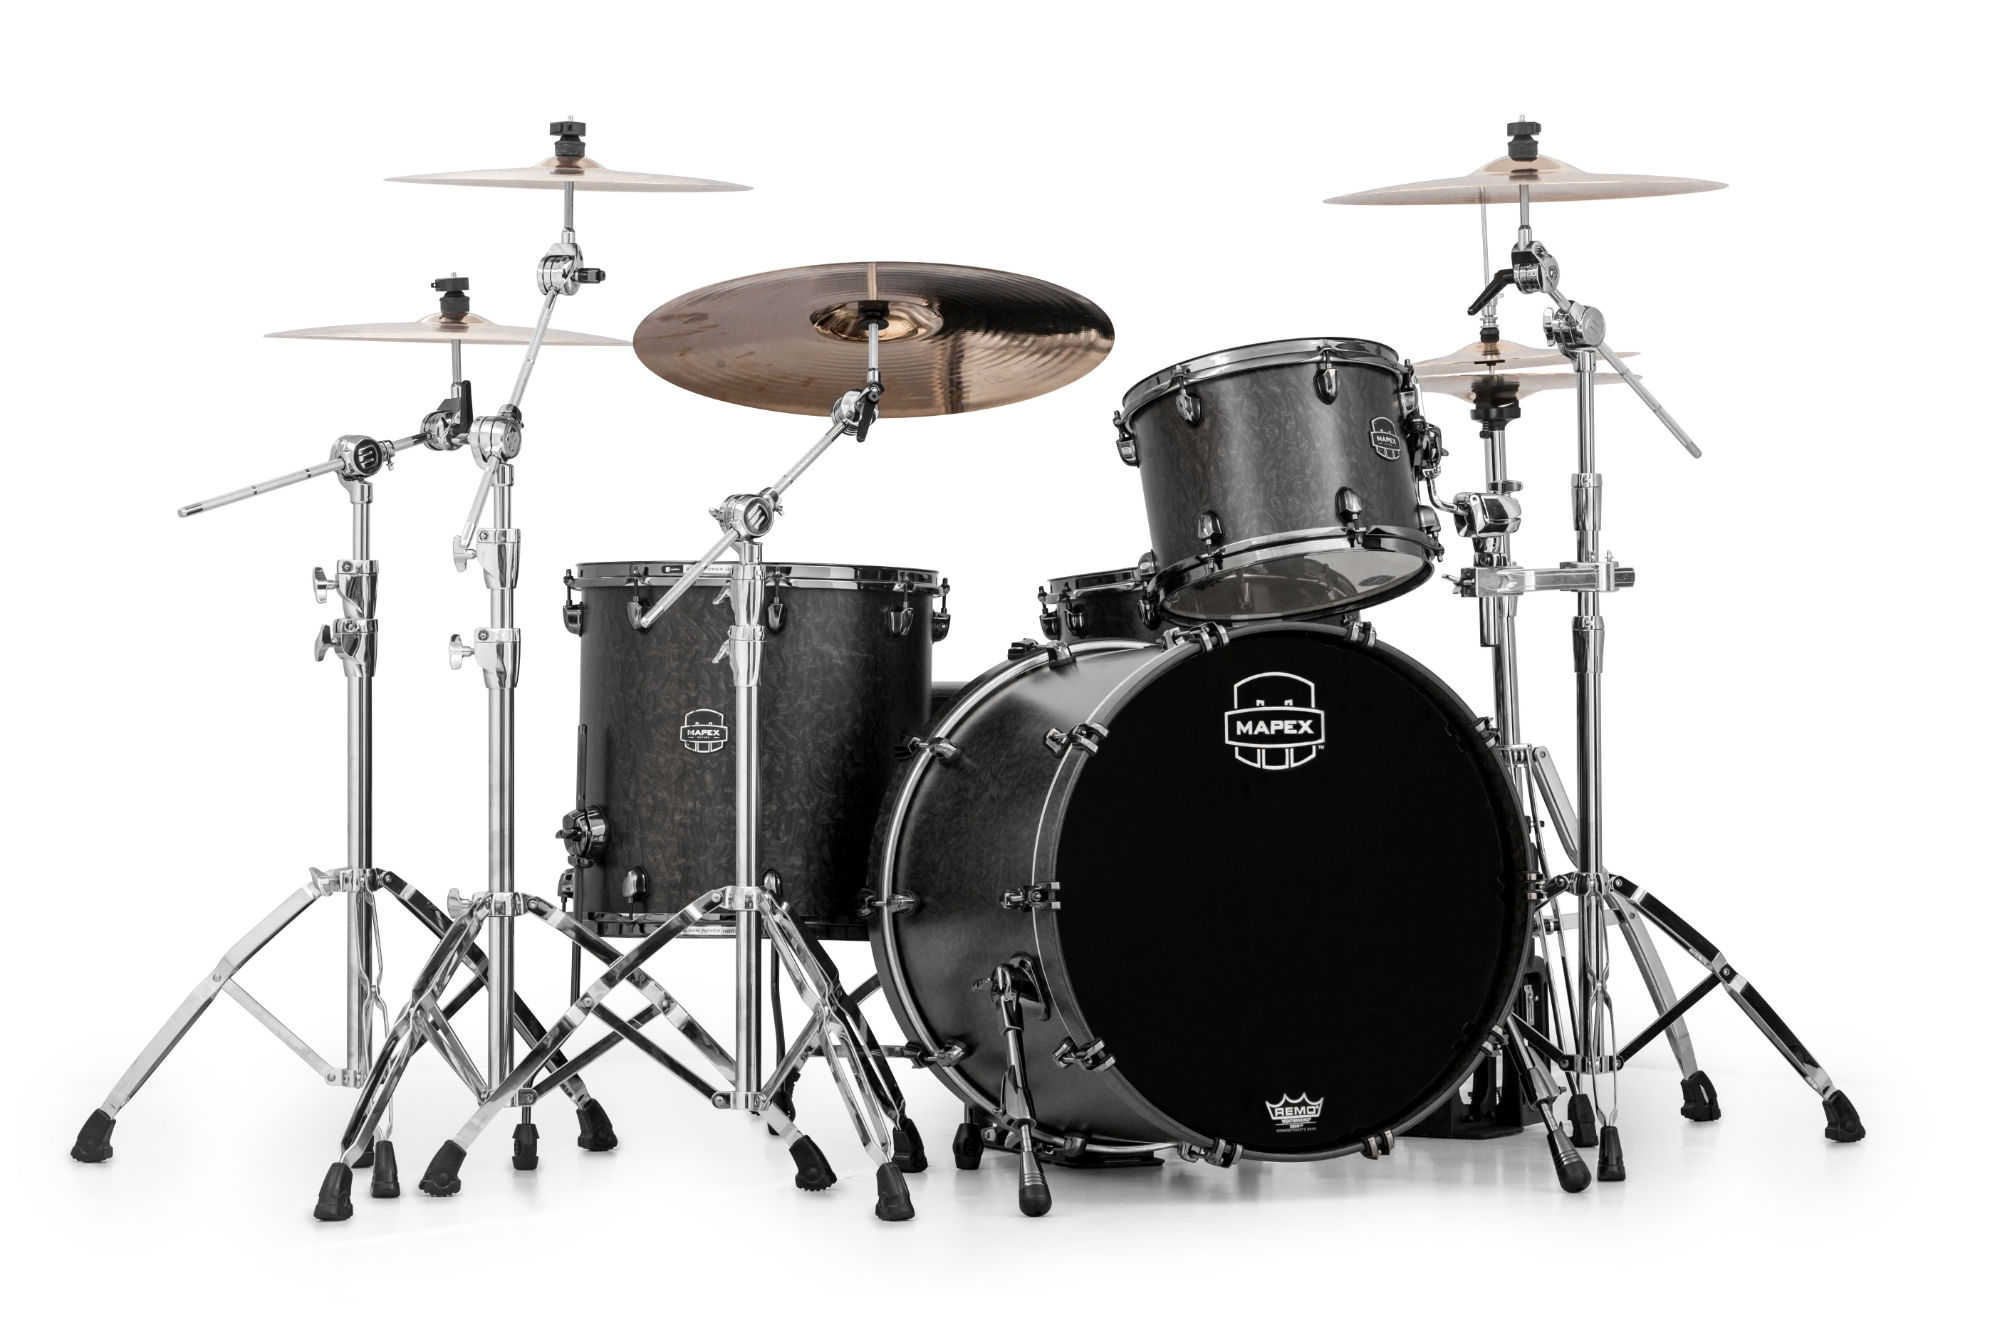 Mapex Saturn V MH Exotic Rock 3-piece shell pack with SONIClear Edge - SV426XBKFB - Satin Black Maple Burl